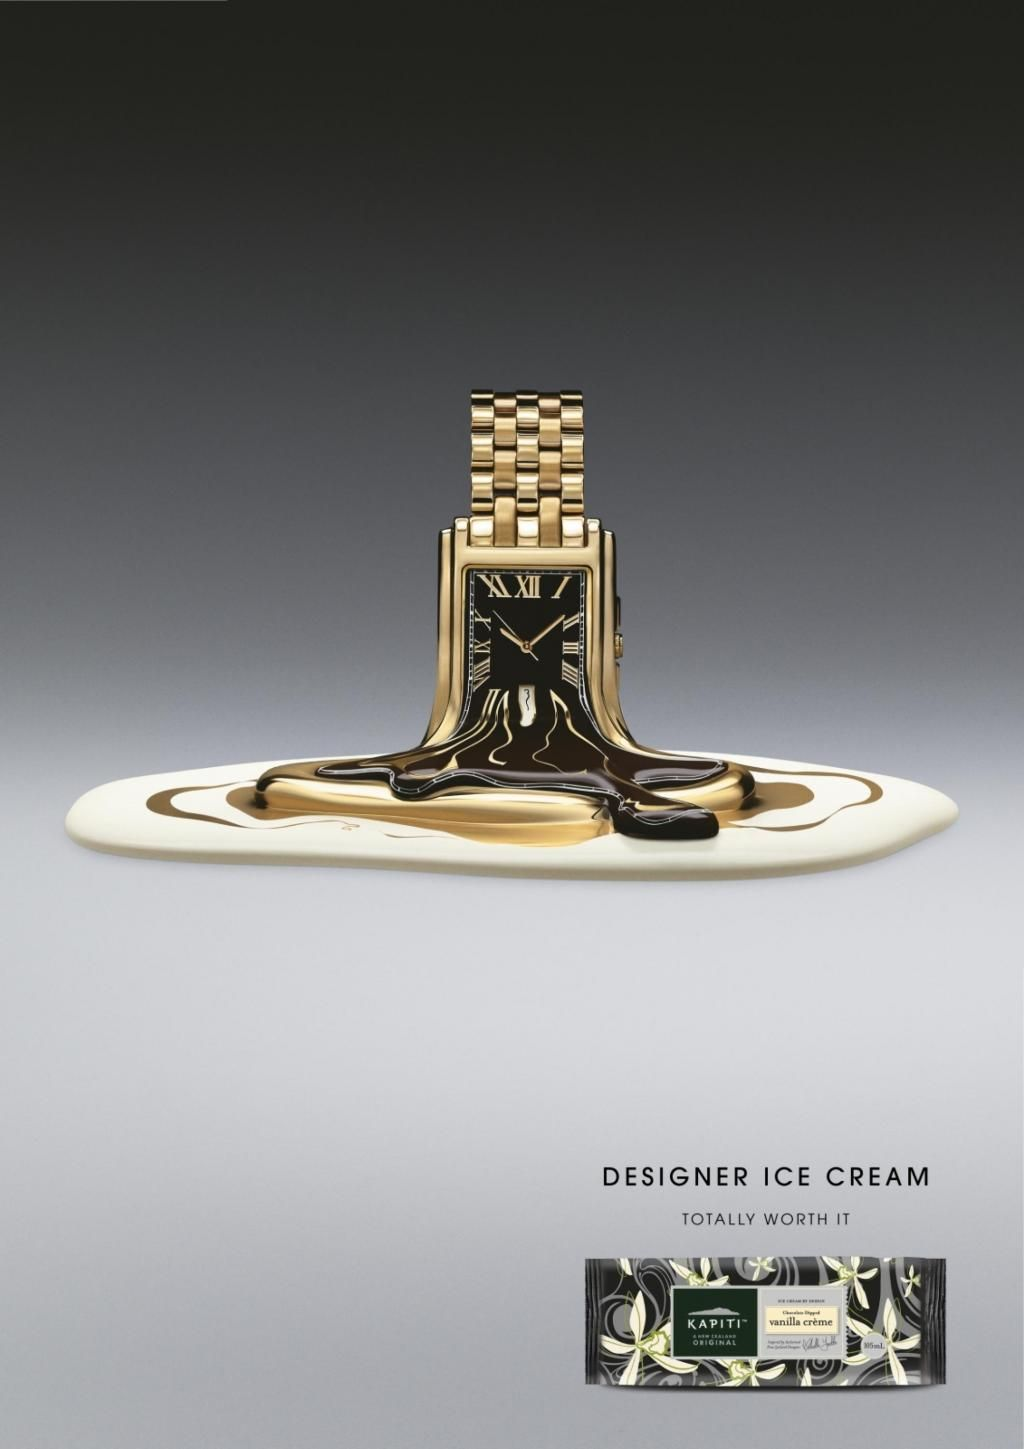 Kapiti ice cream watch print ad by colenso bbdo for Room design kapiti